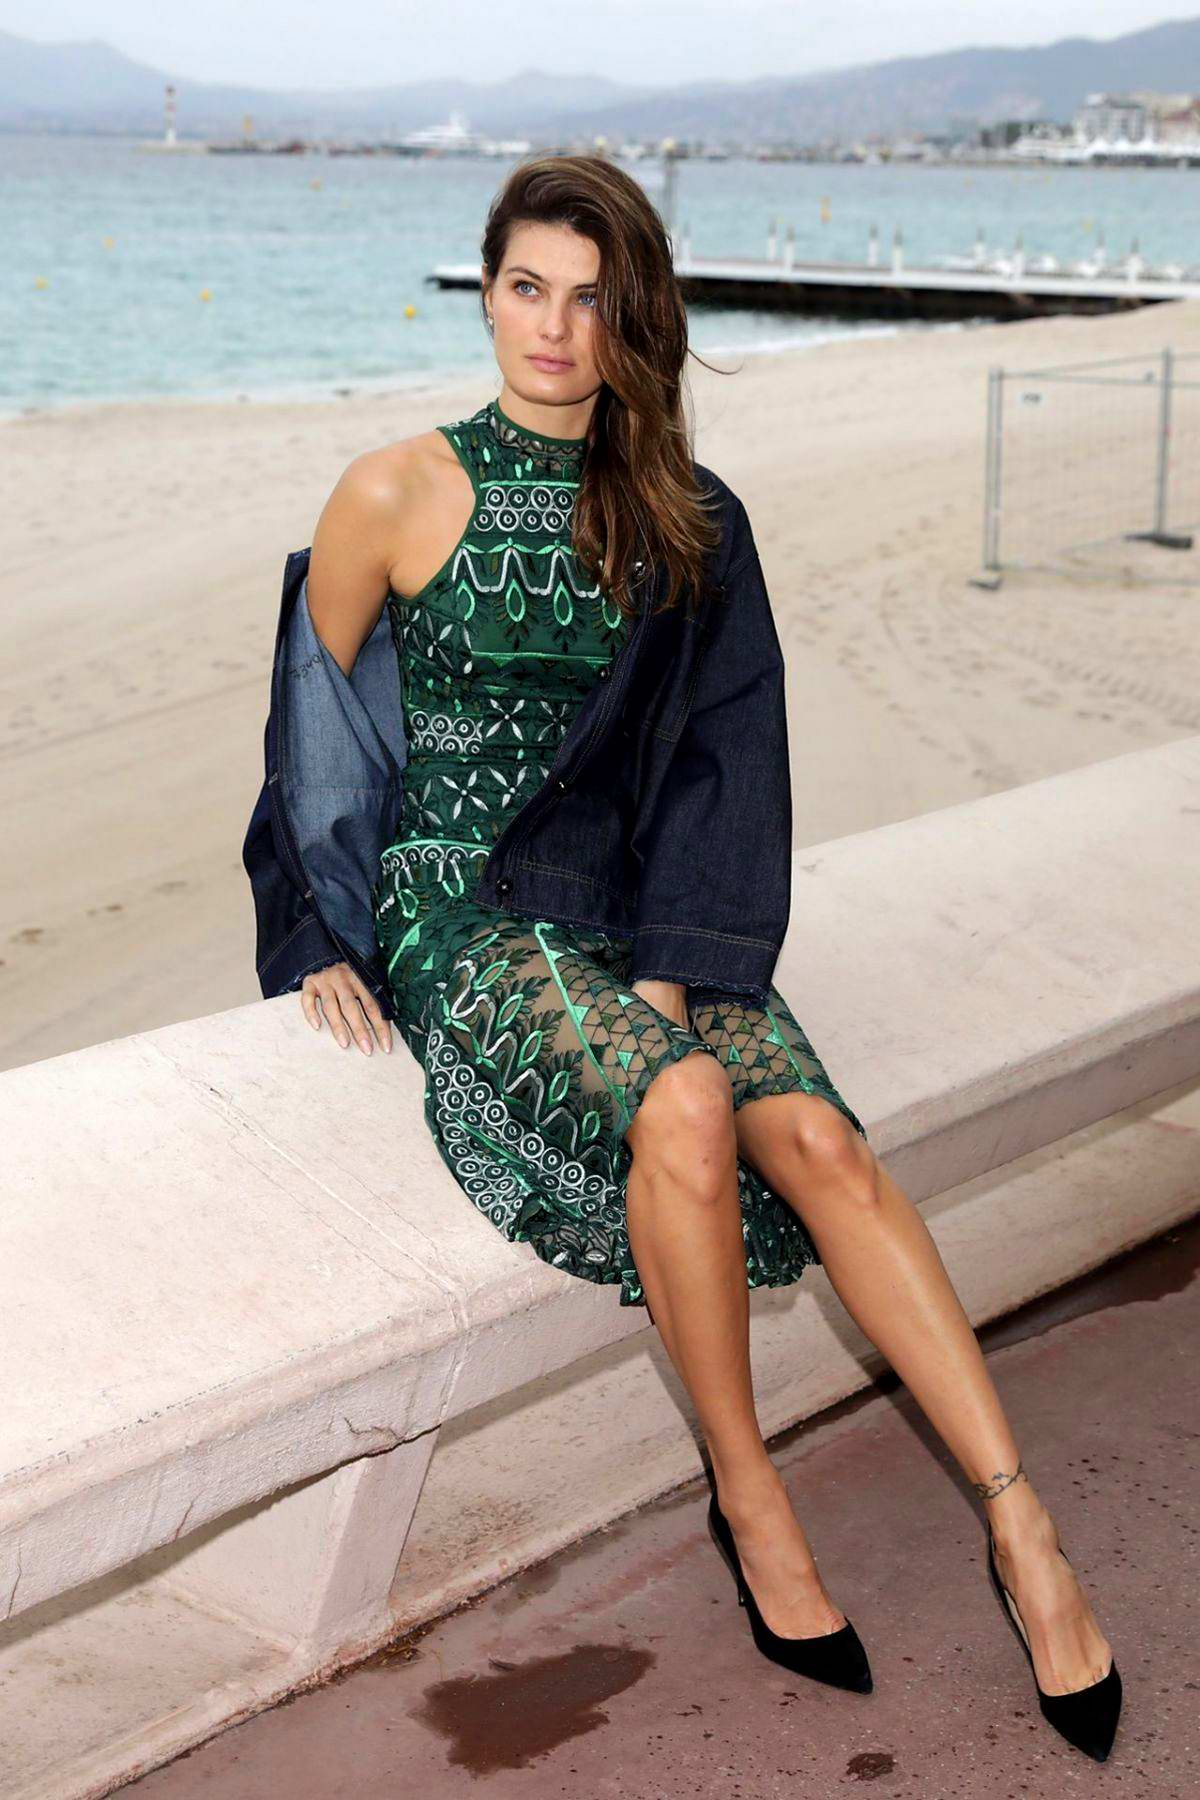 Isabeli Fontana poses in a green dress for some photos while out during the 72nd Cannes Film Festival in Cannes, France